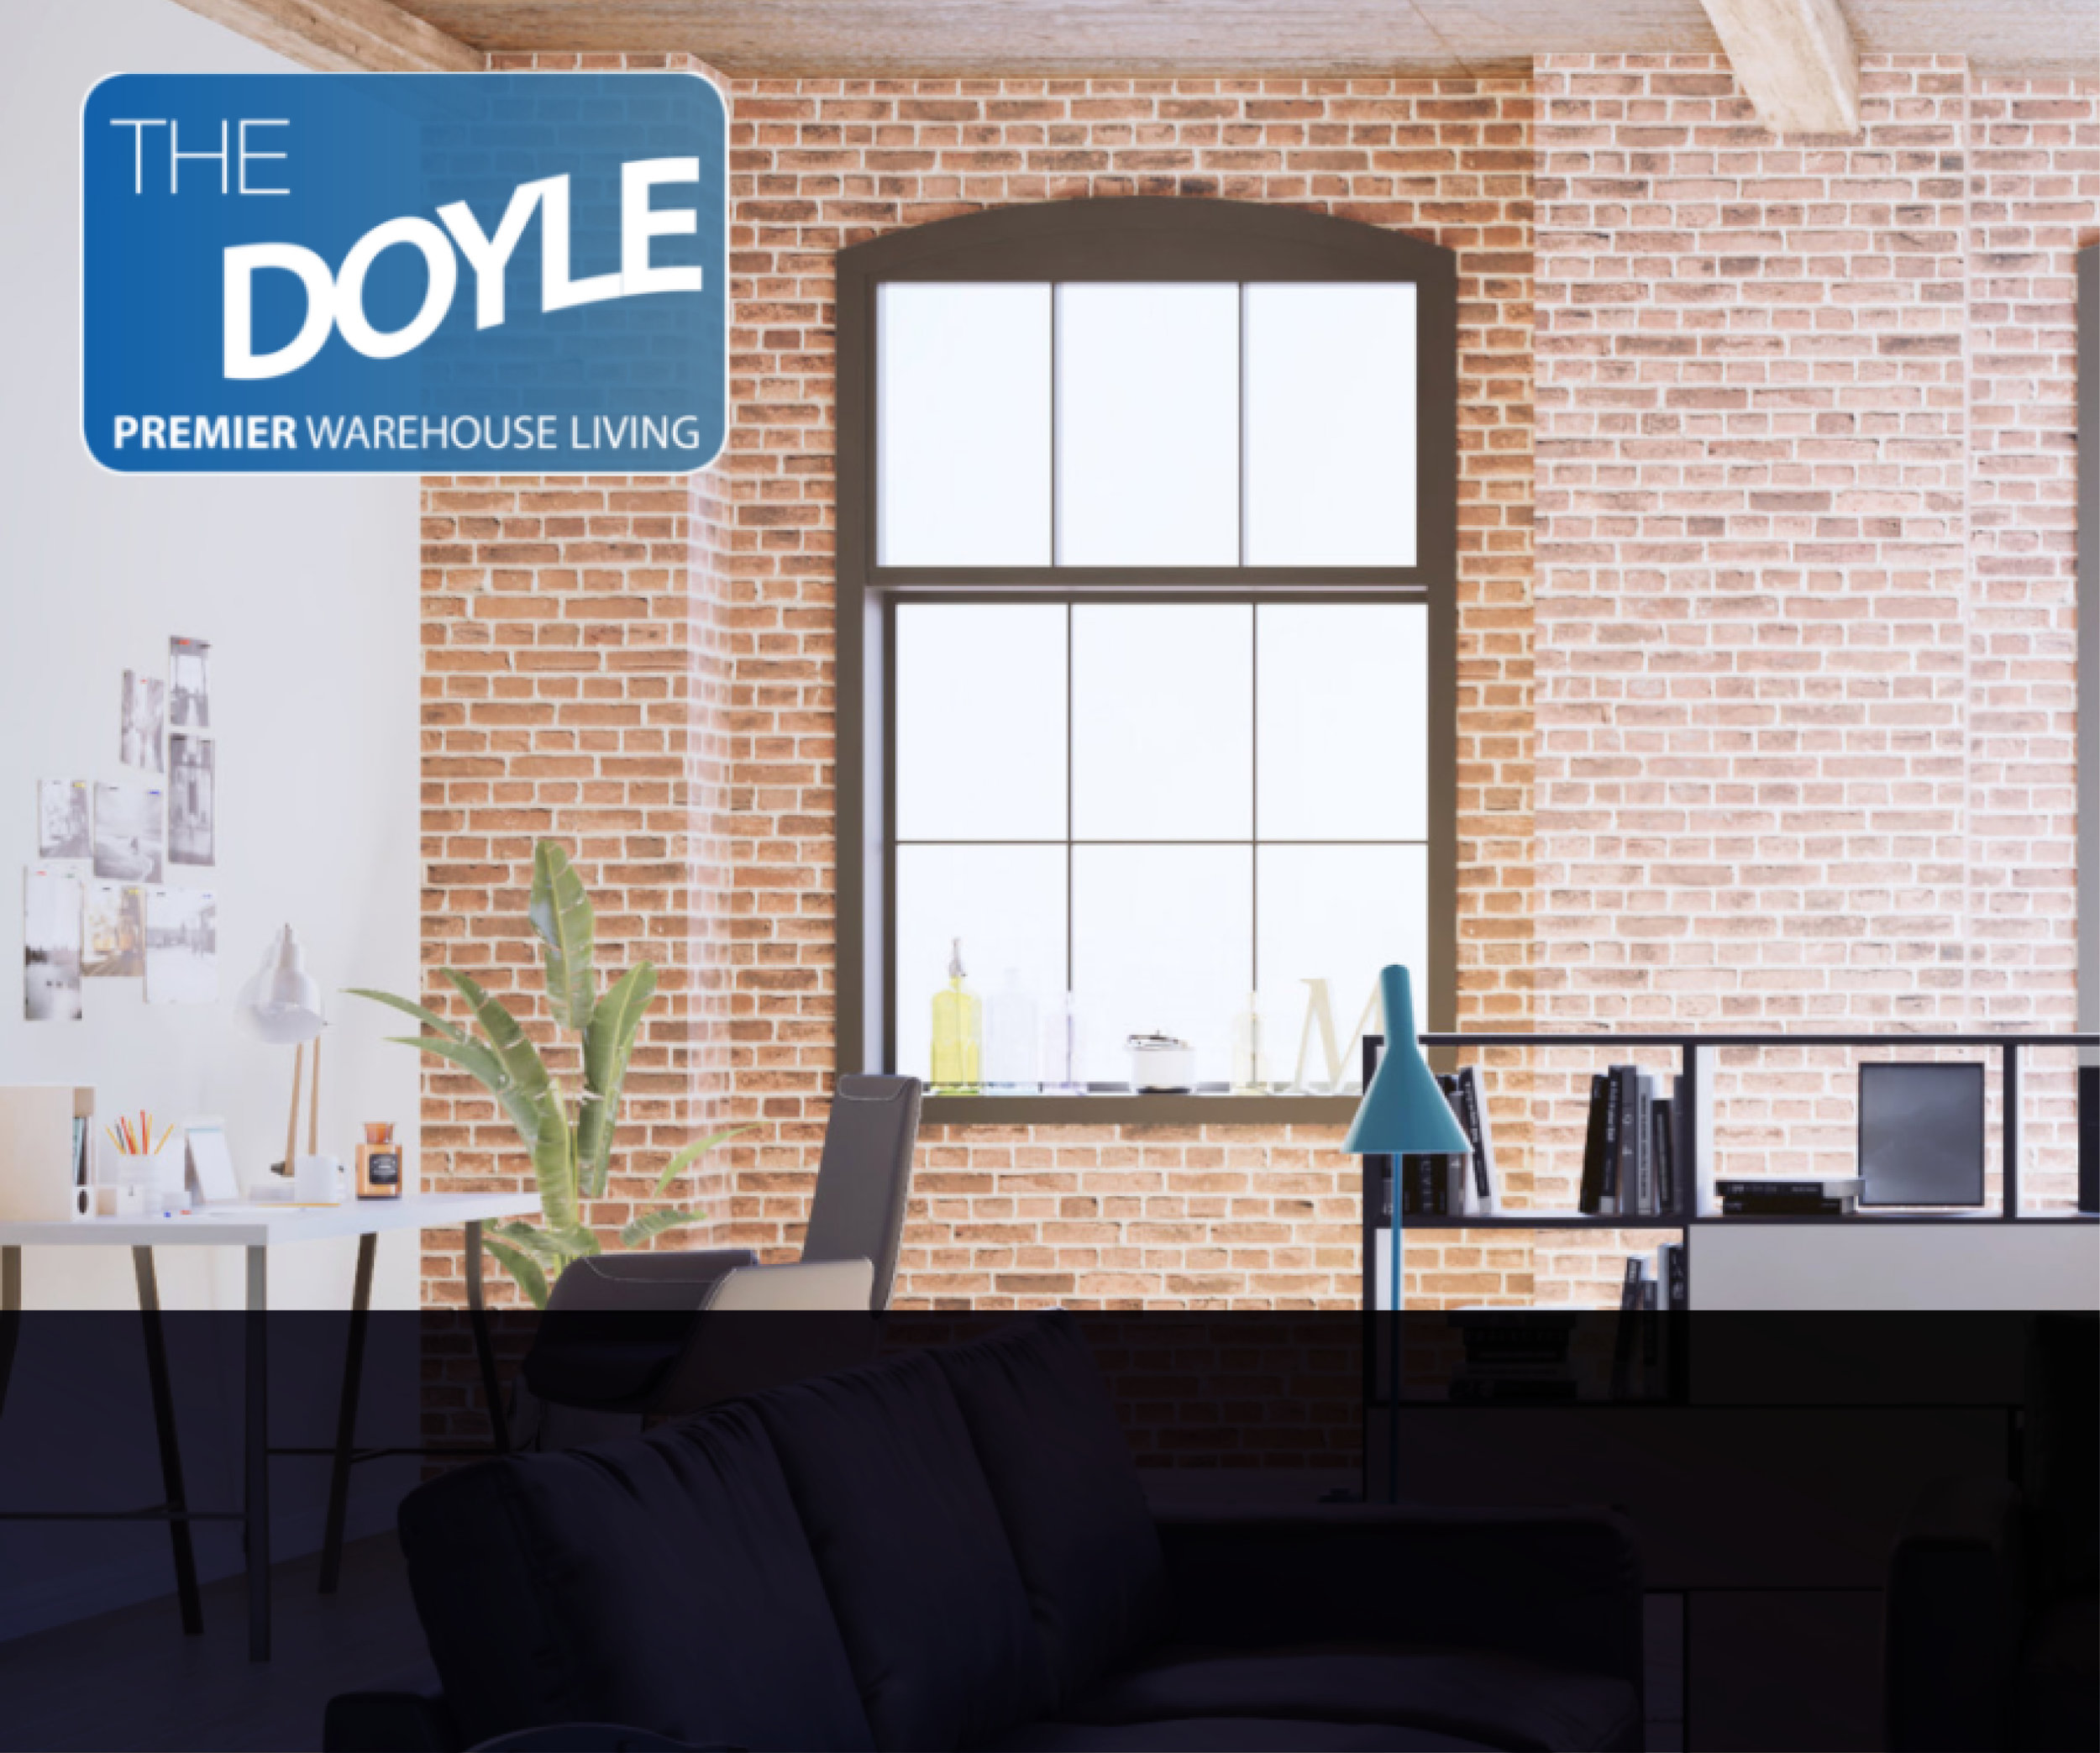 THE DOYLE LOFTS